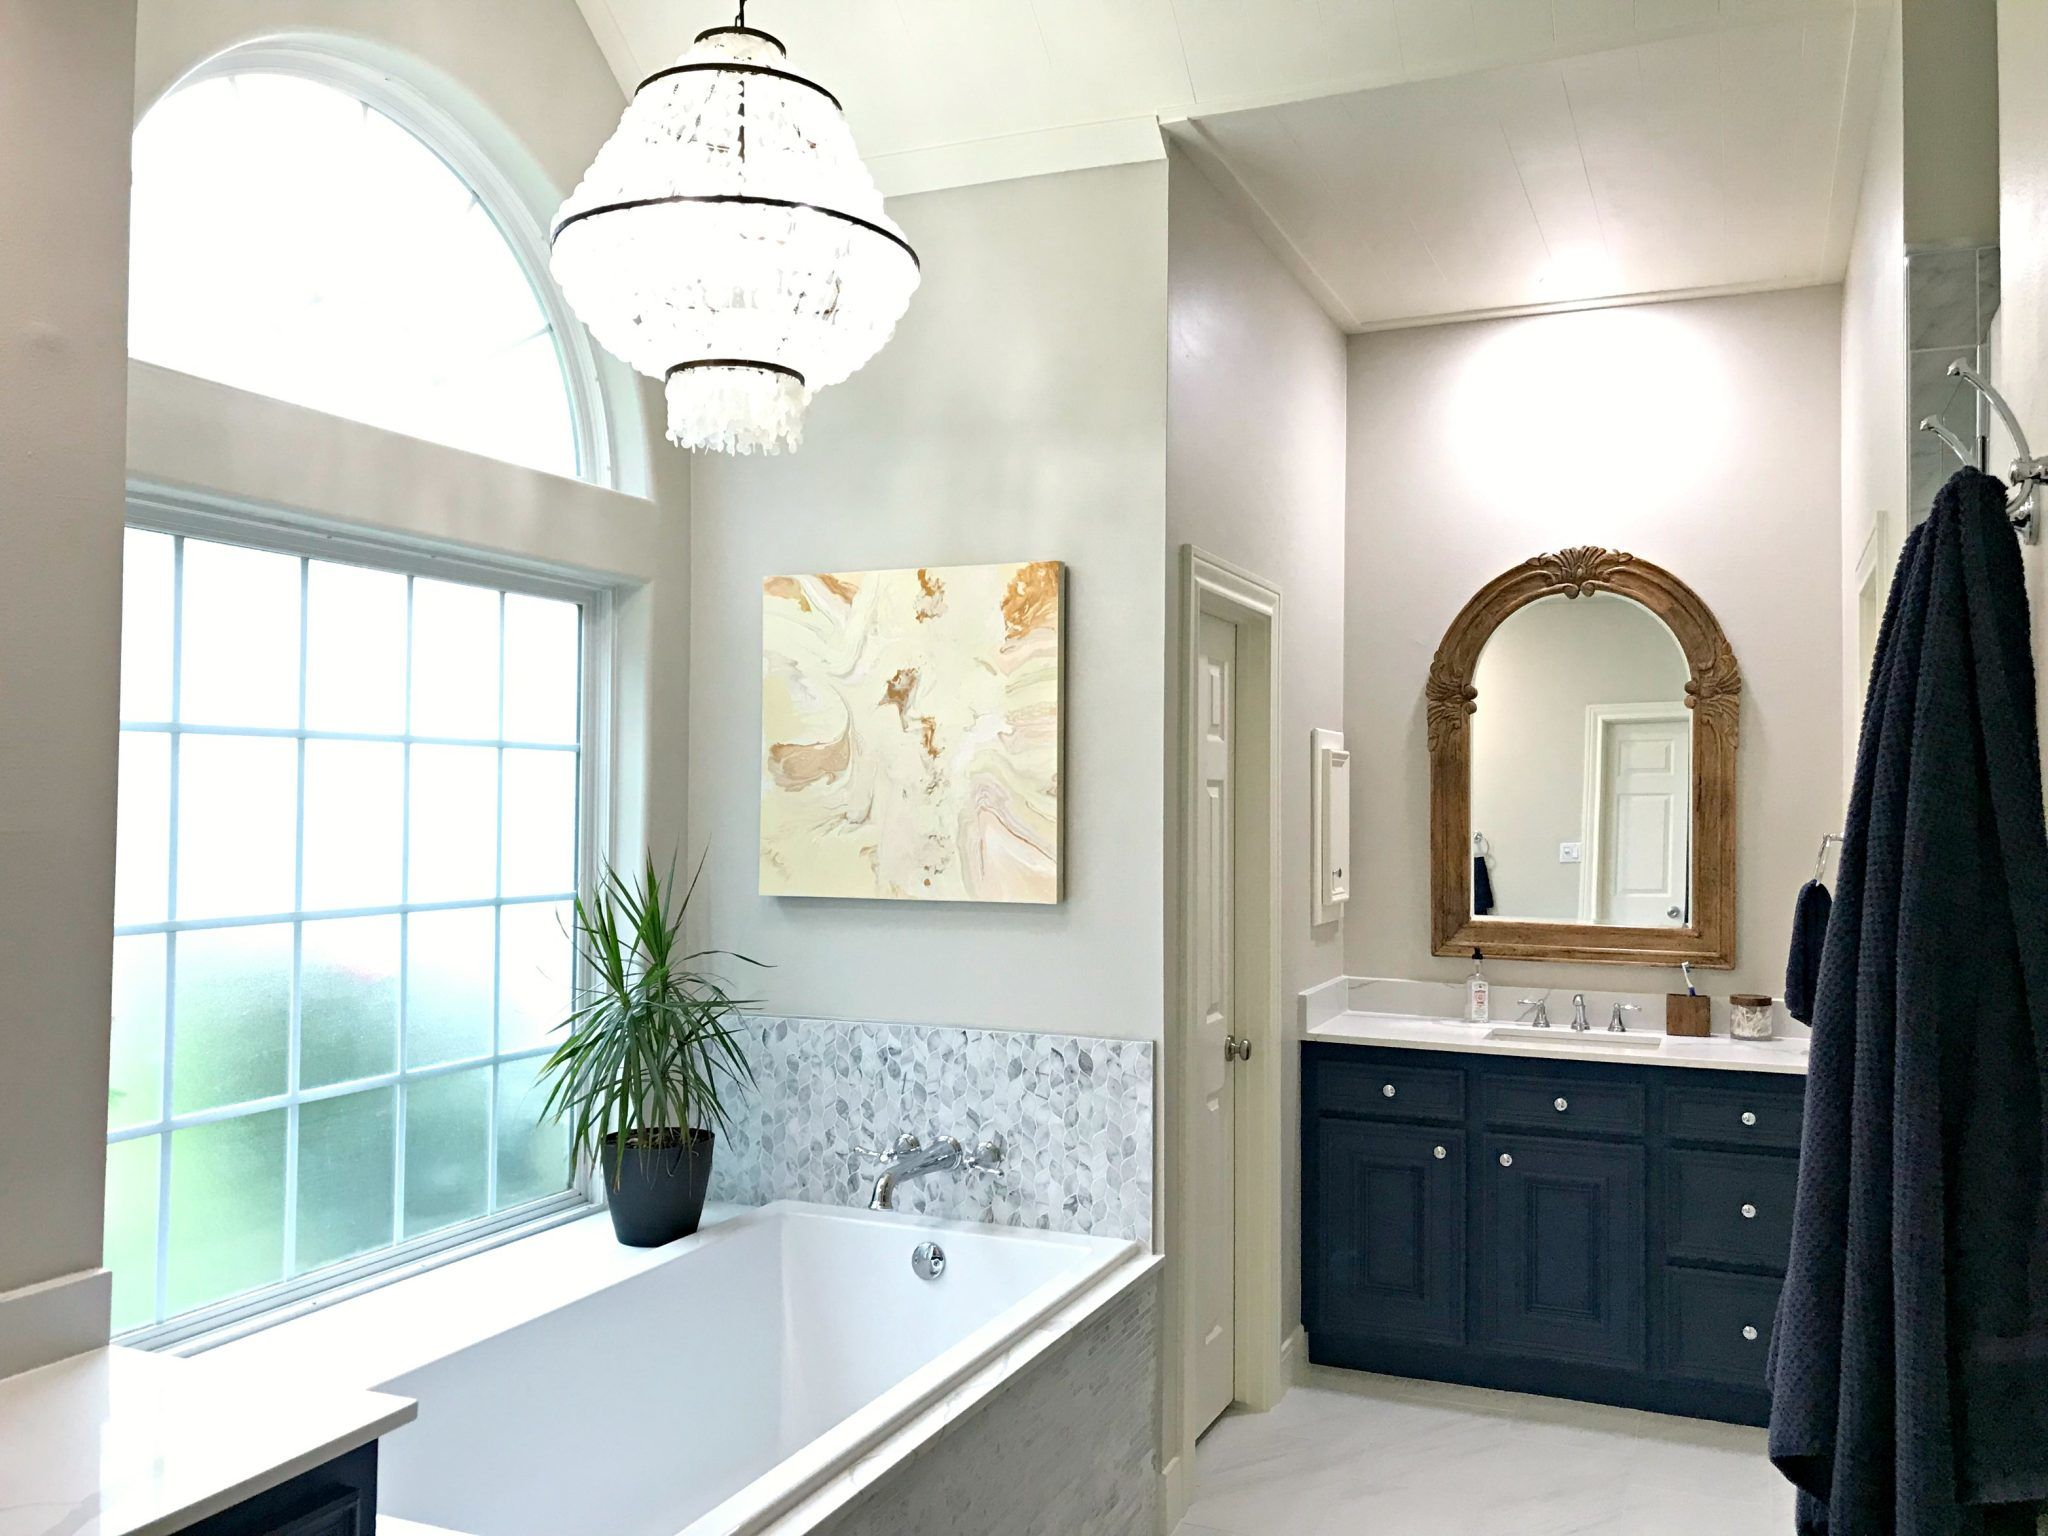 I love this beautiful Master Bathroom Makeover with traditional style and stylish bathroom decor ideas. #BathroomDecor #BathroomDecorIdeas #BathroomDesign #MasterBathroom #BeforeAndAfter